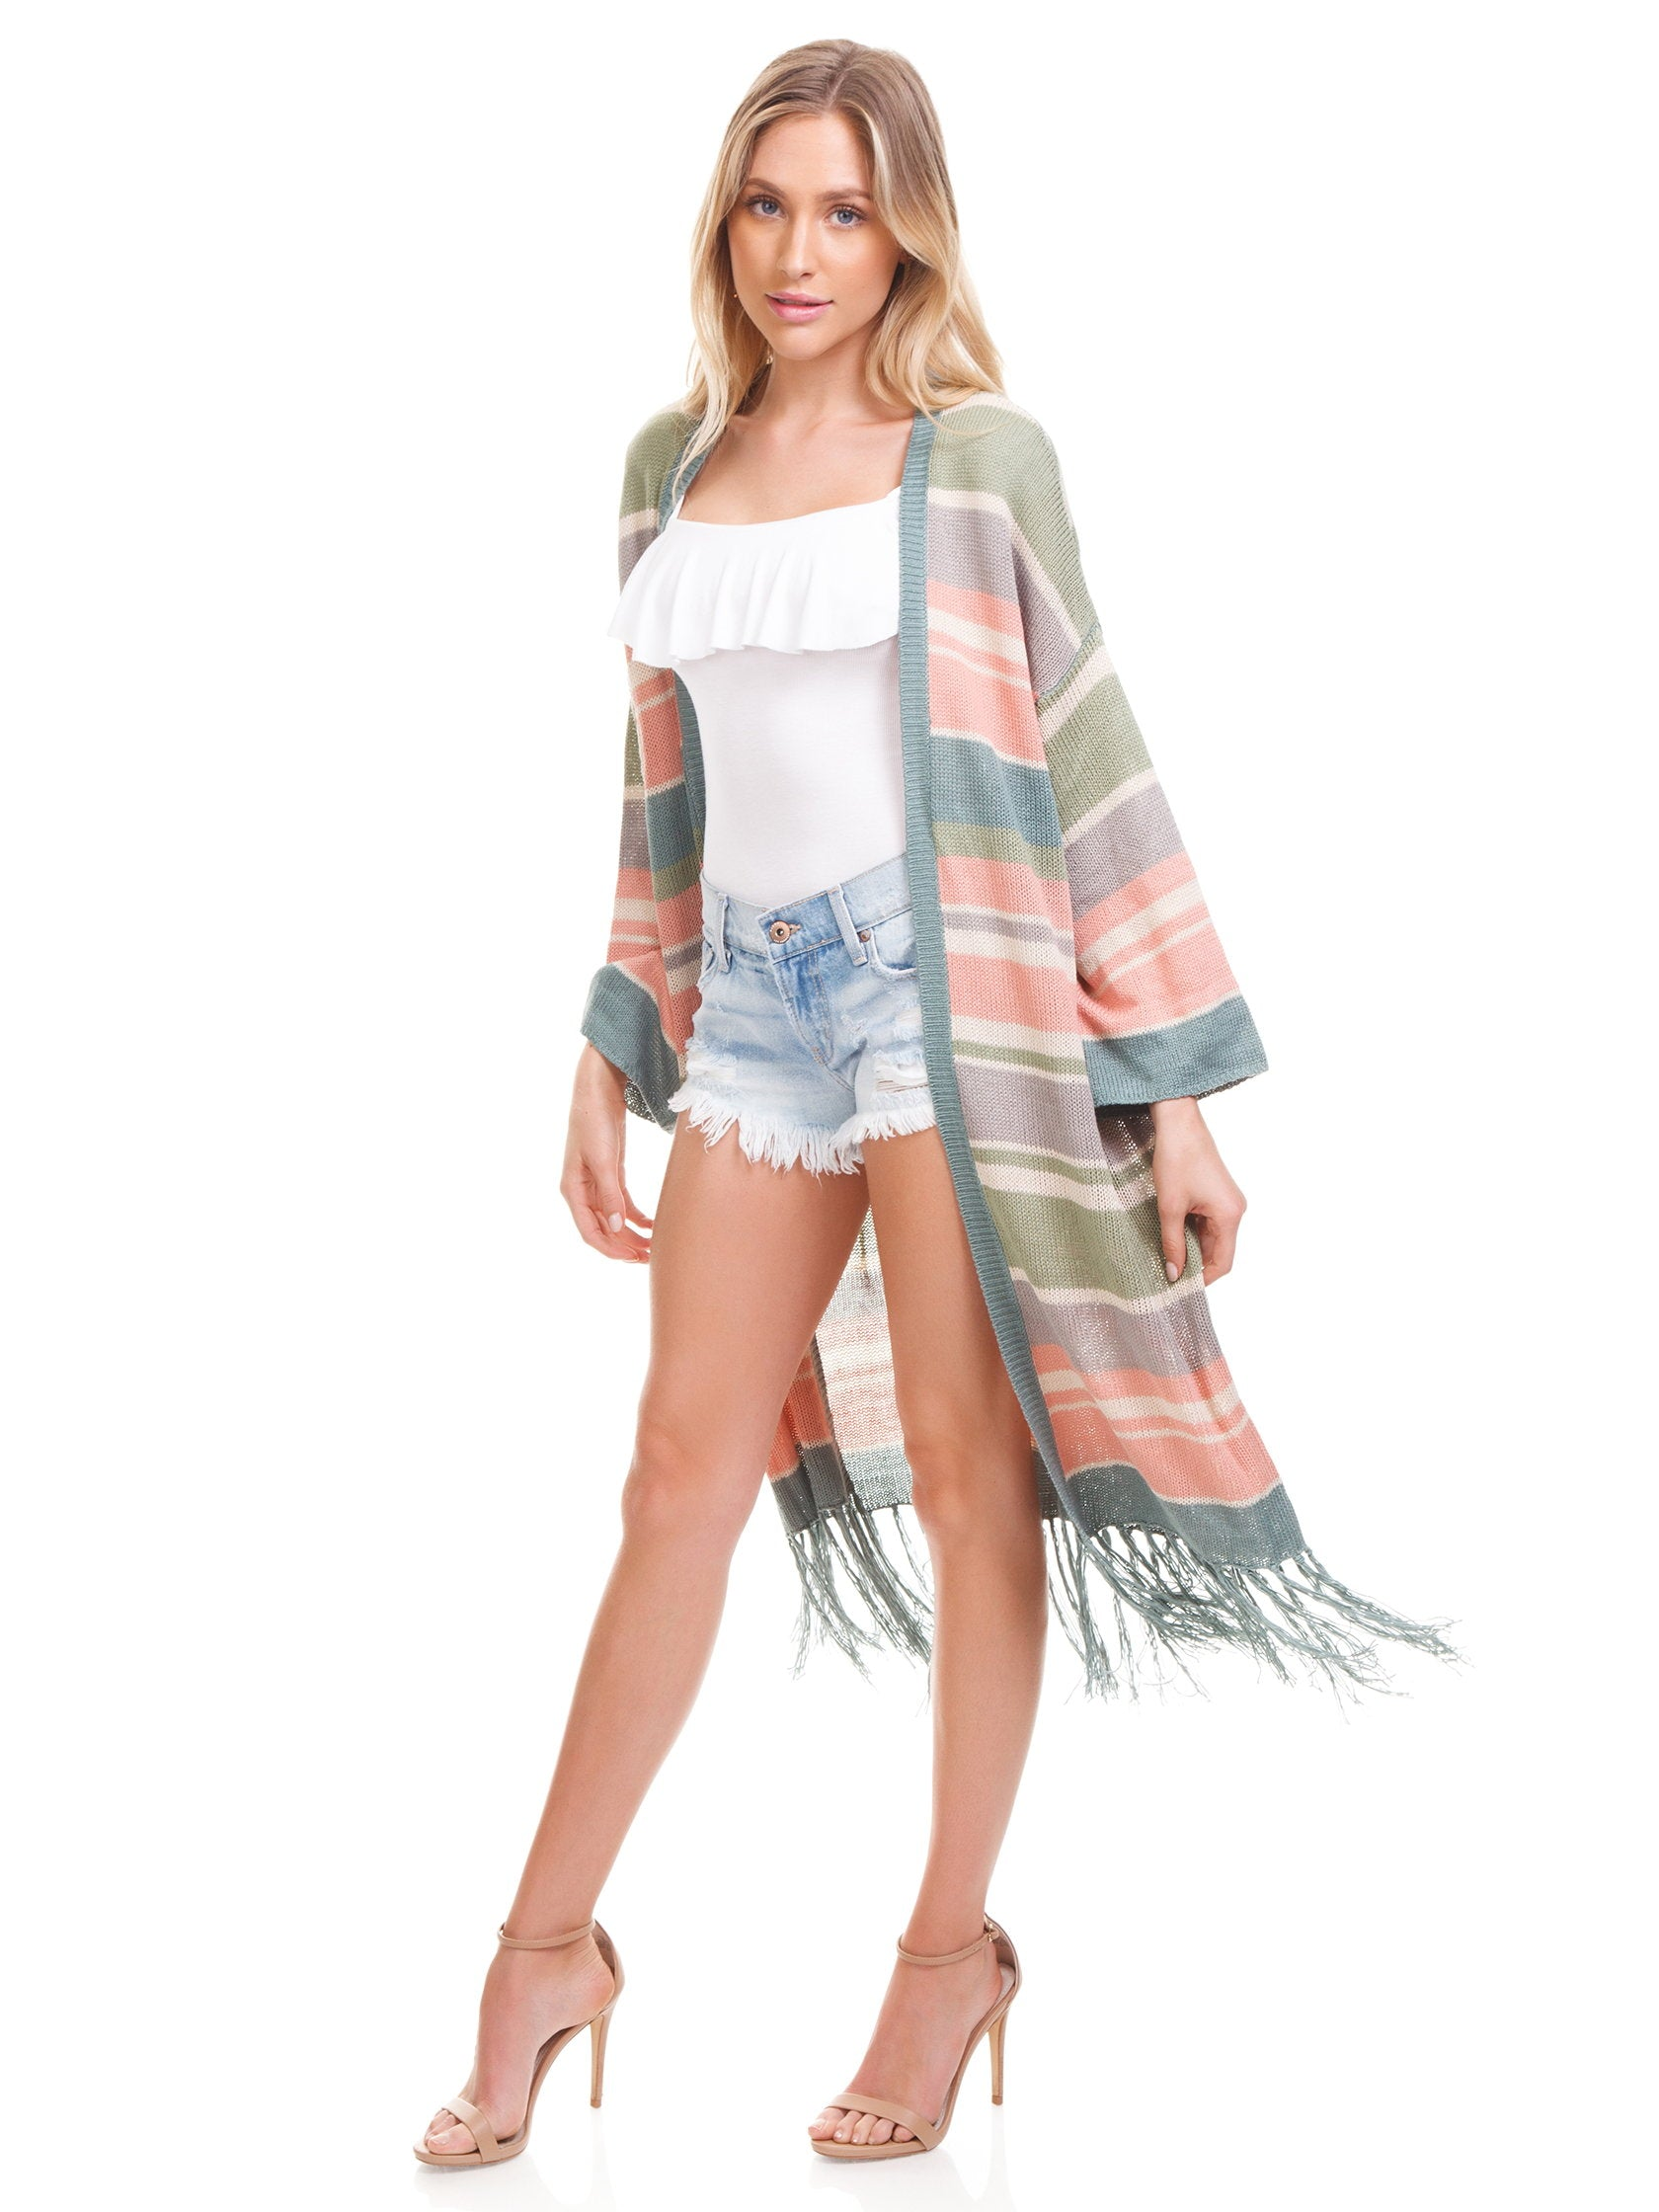 Girl outfit in a sweater rental from Show Me Your Mumu called Maude Fringe Cardigan